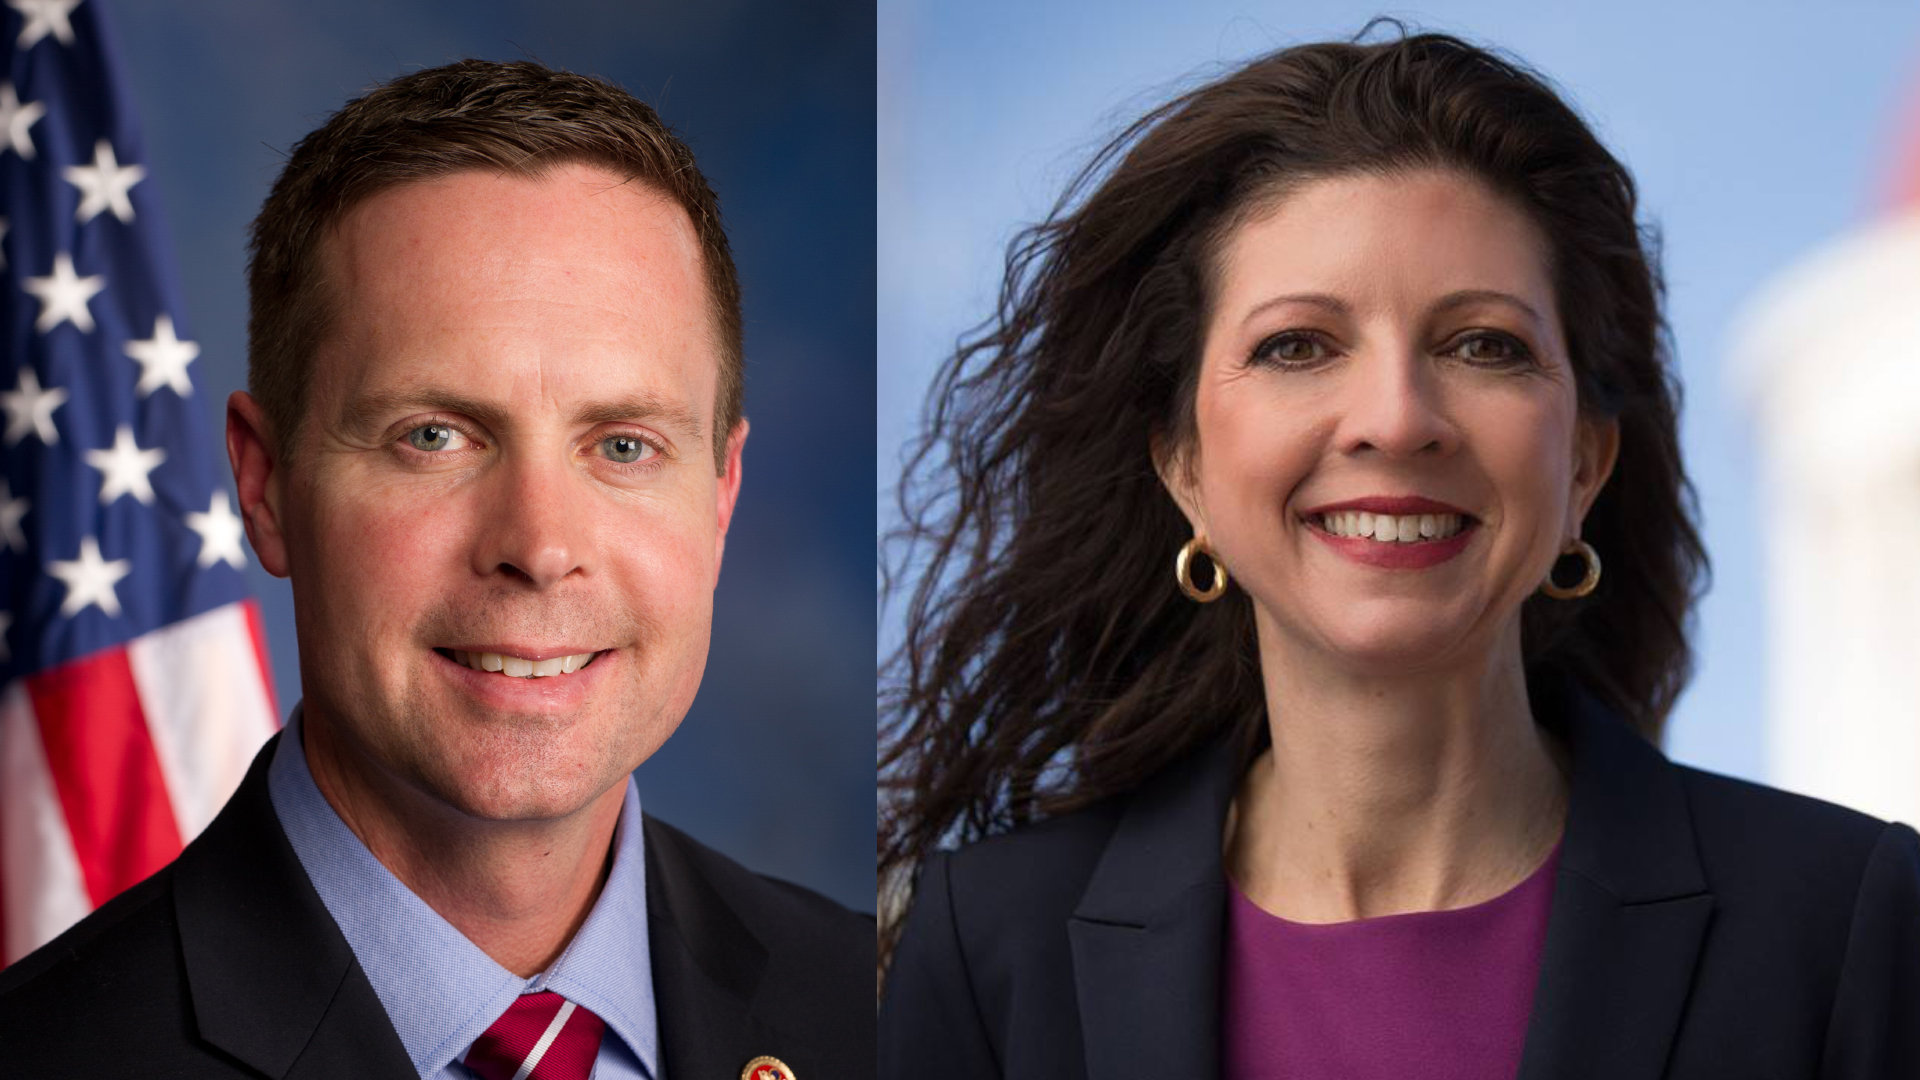 Davis Declares Narrow Victory In 13th House District; Londrigan Says Still Too Close To Call